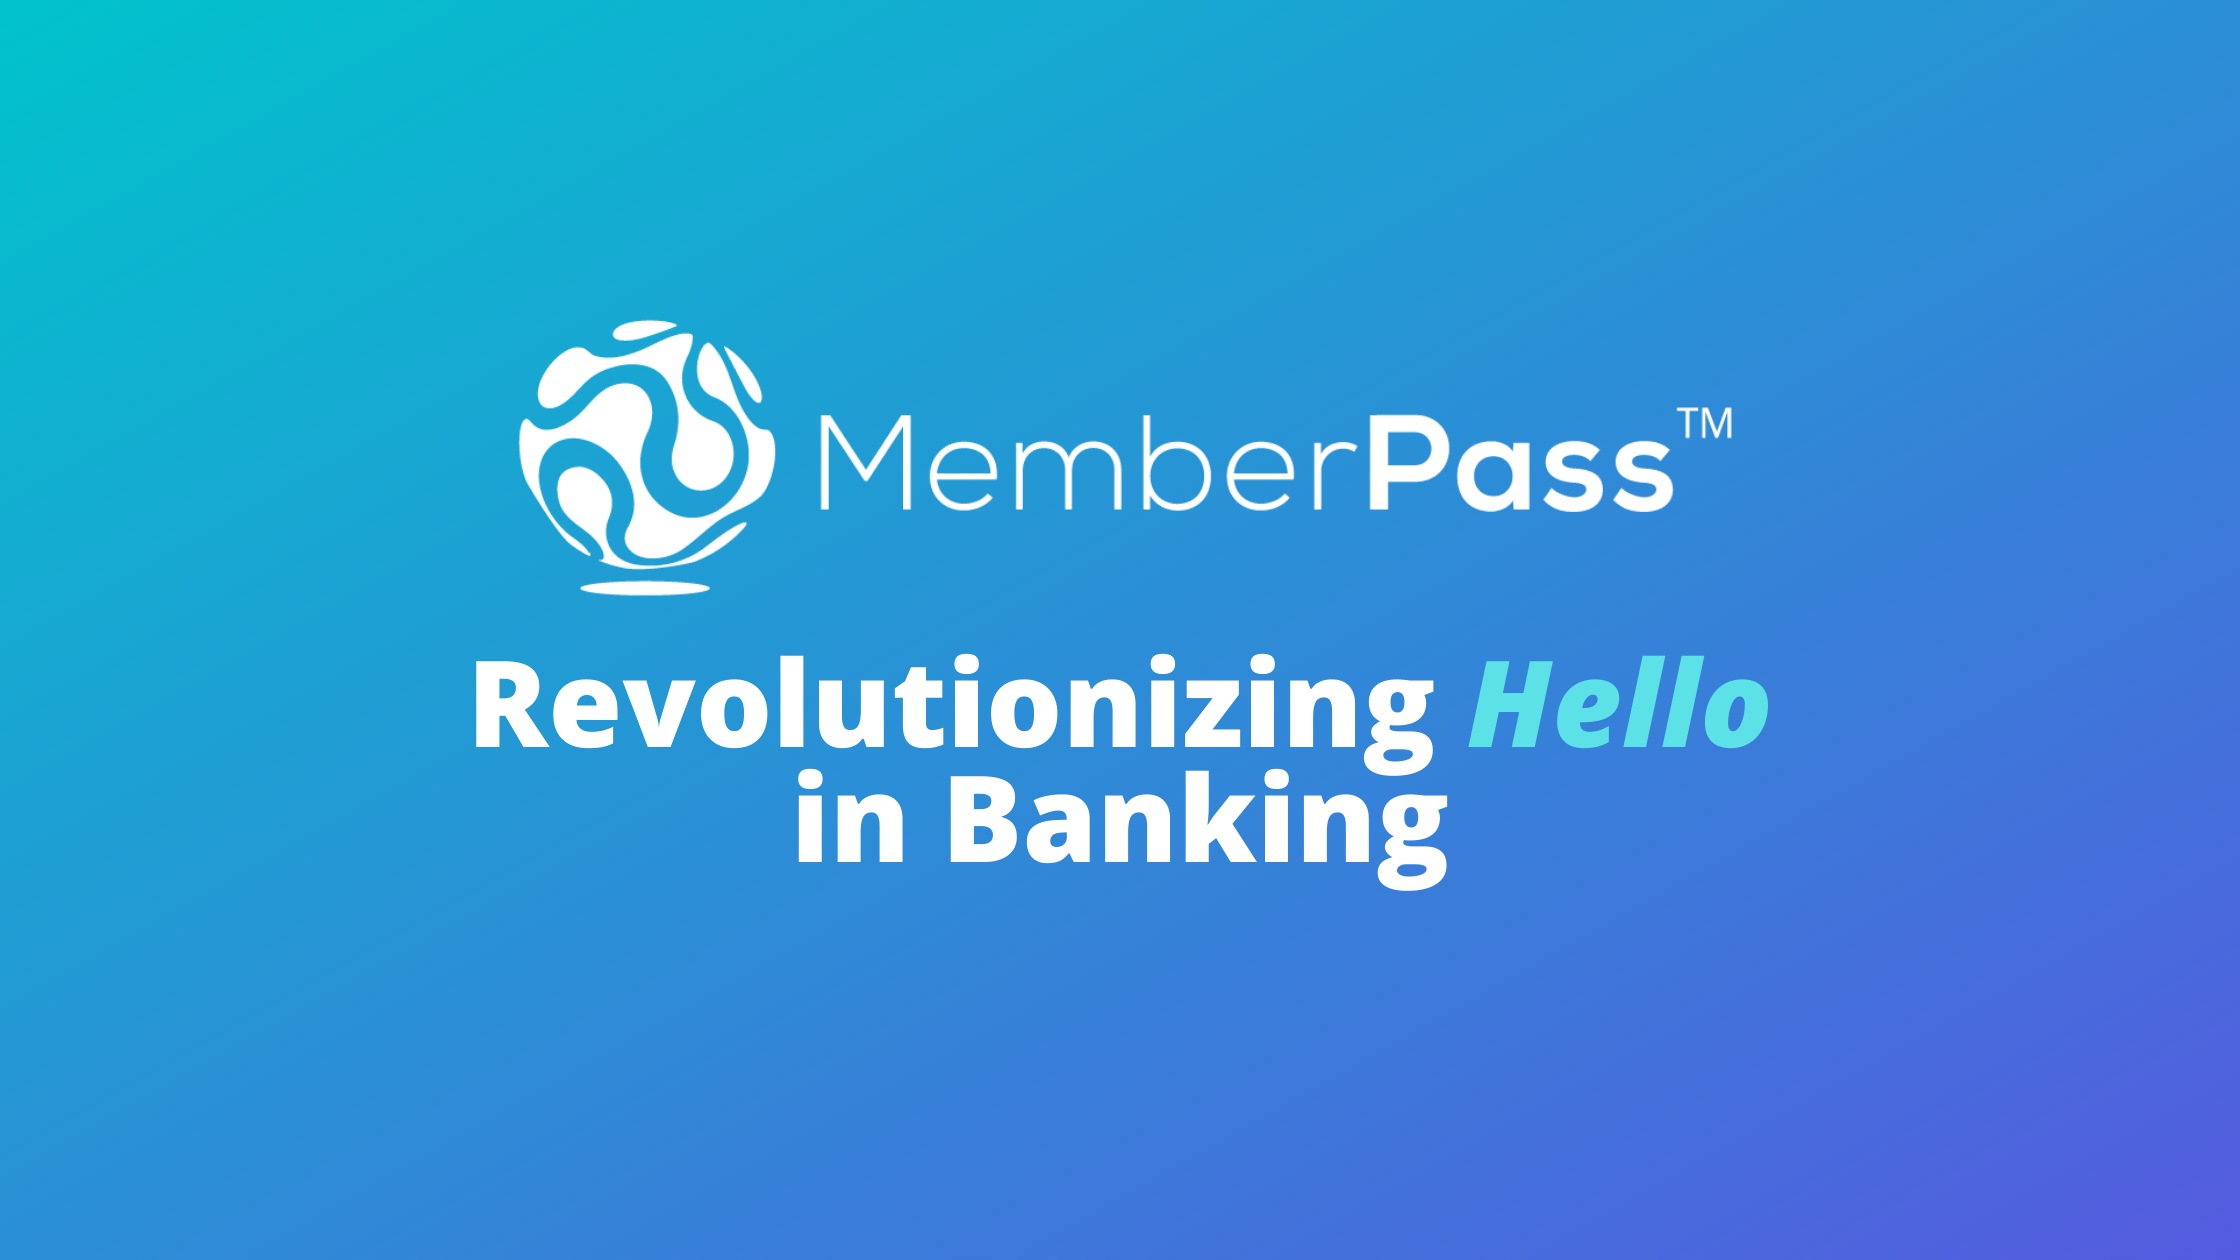 MemberPass™ App Provides Credit Unions Secure Mobile Identity to Authenticate Members Safely and Securely in a Contactless Environment